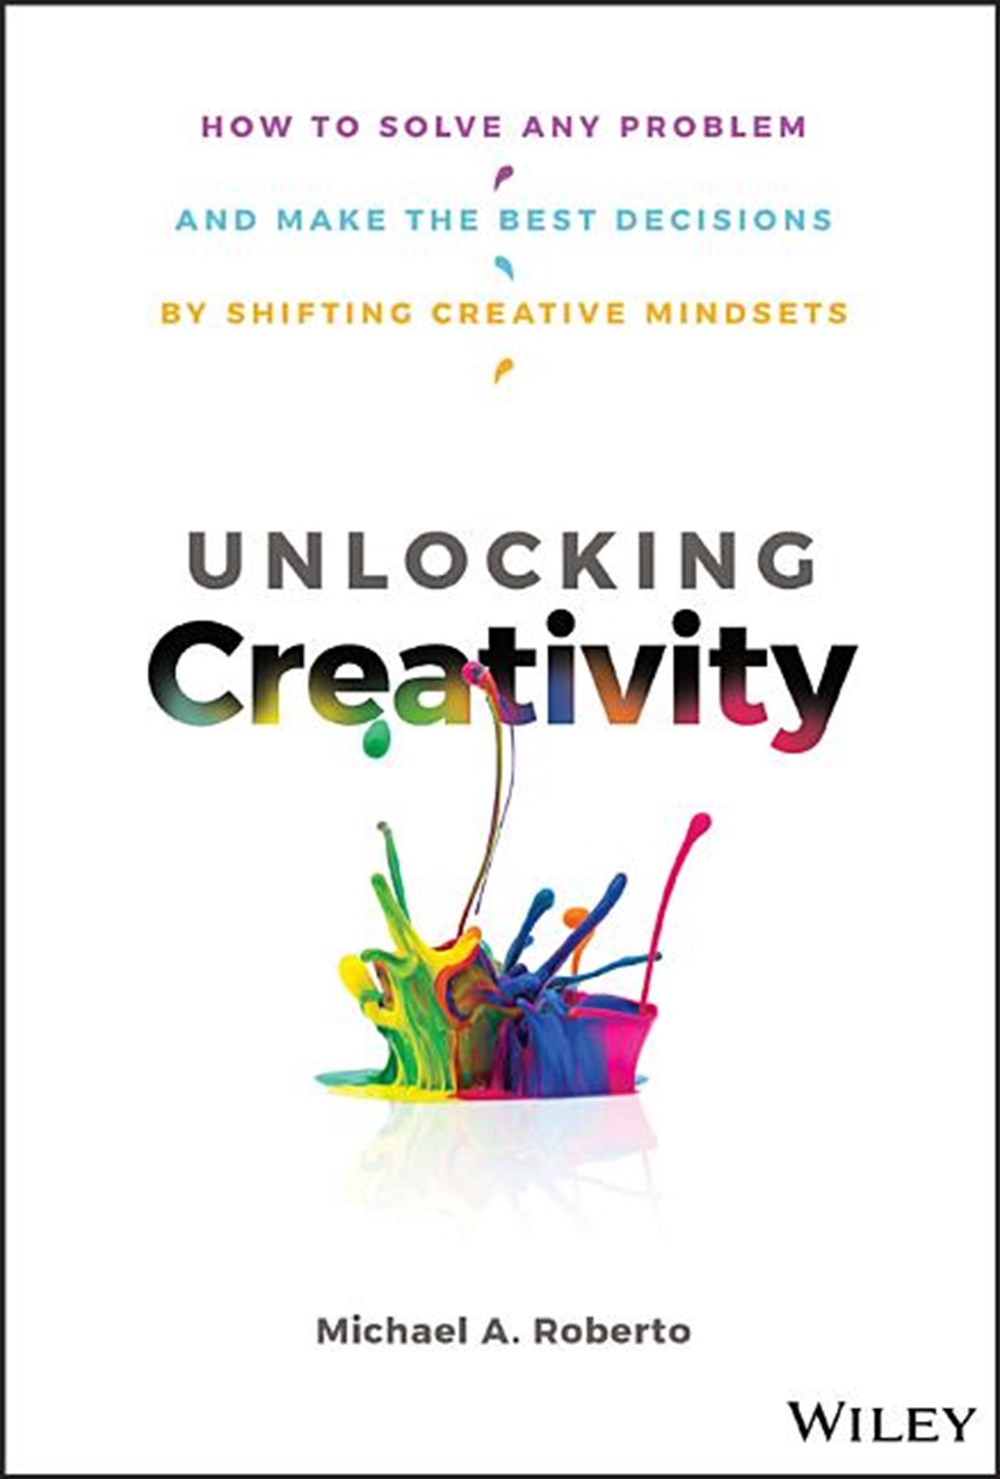 Unlocking Creativity How to Solve Any Problem and Make the Best Decisions by Shifting Creative Minds